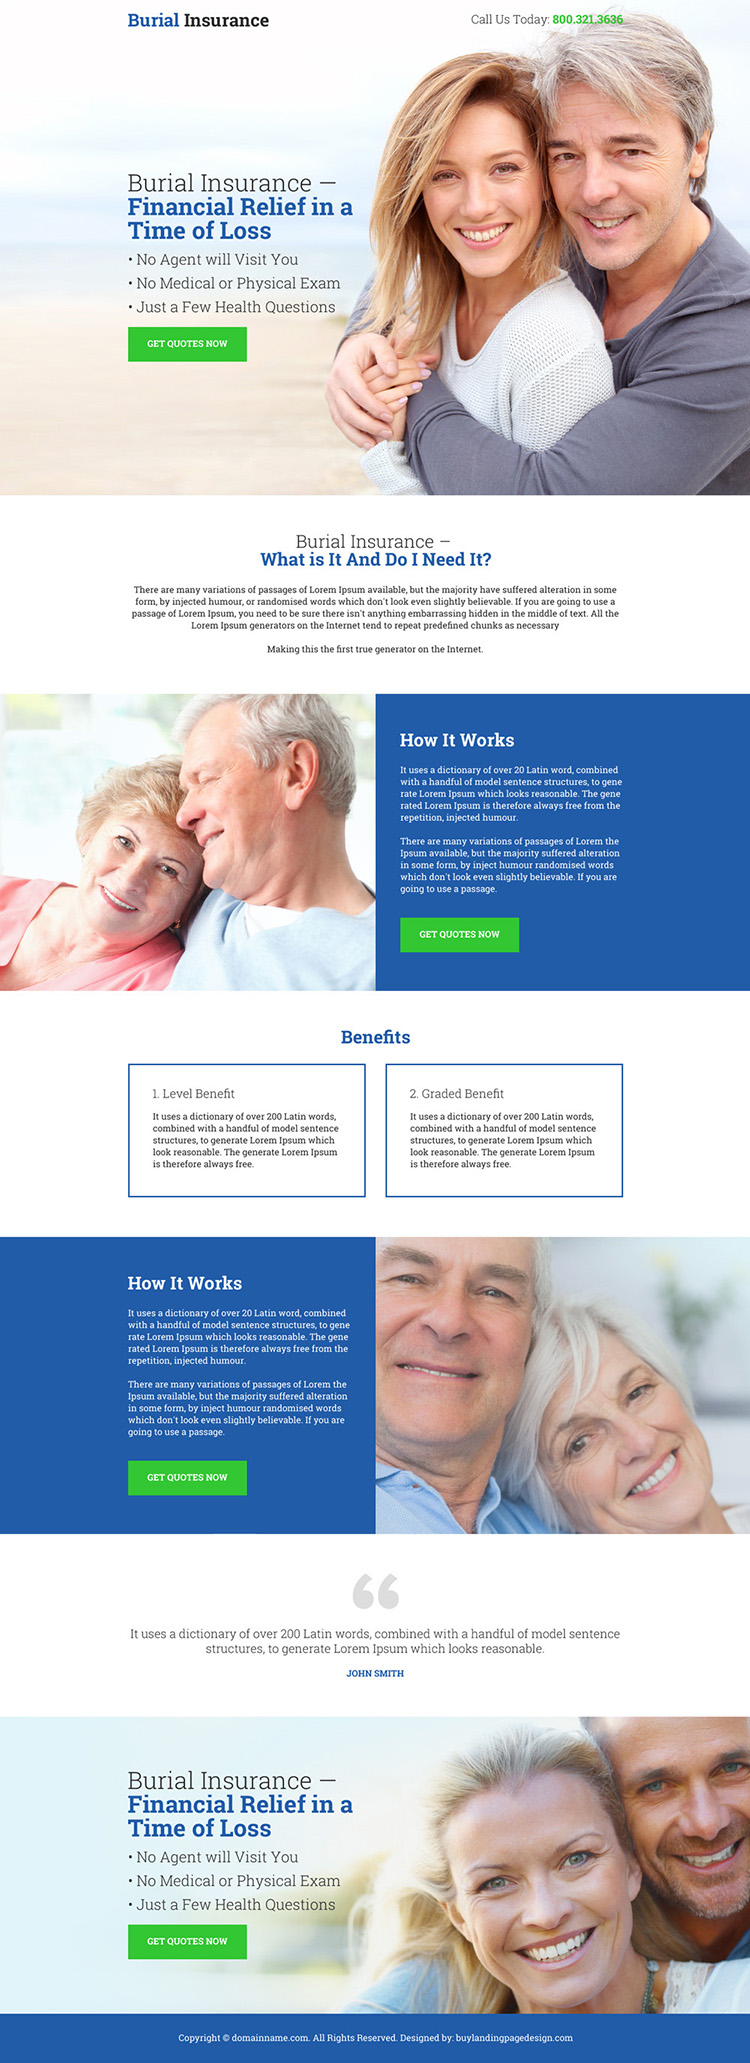 burial insurance for financial relief bootstrap landing page